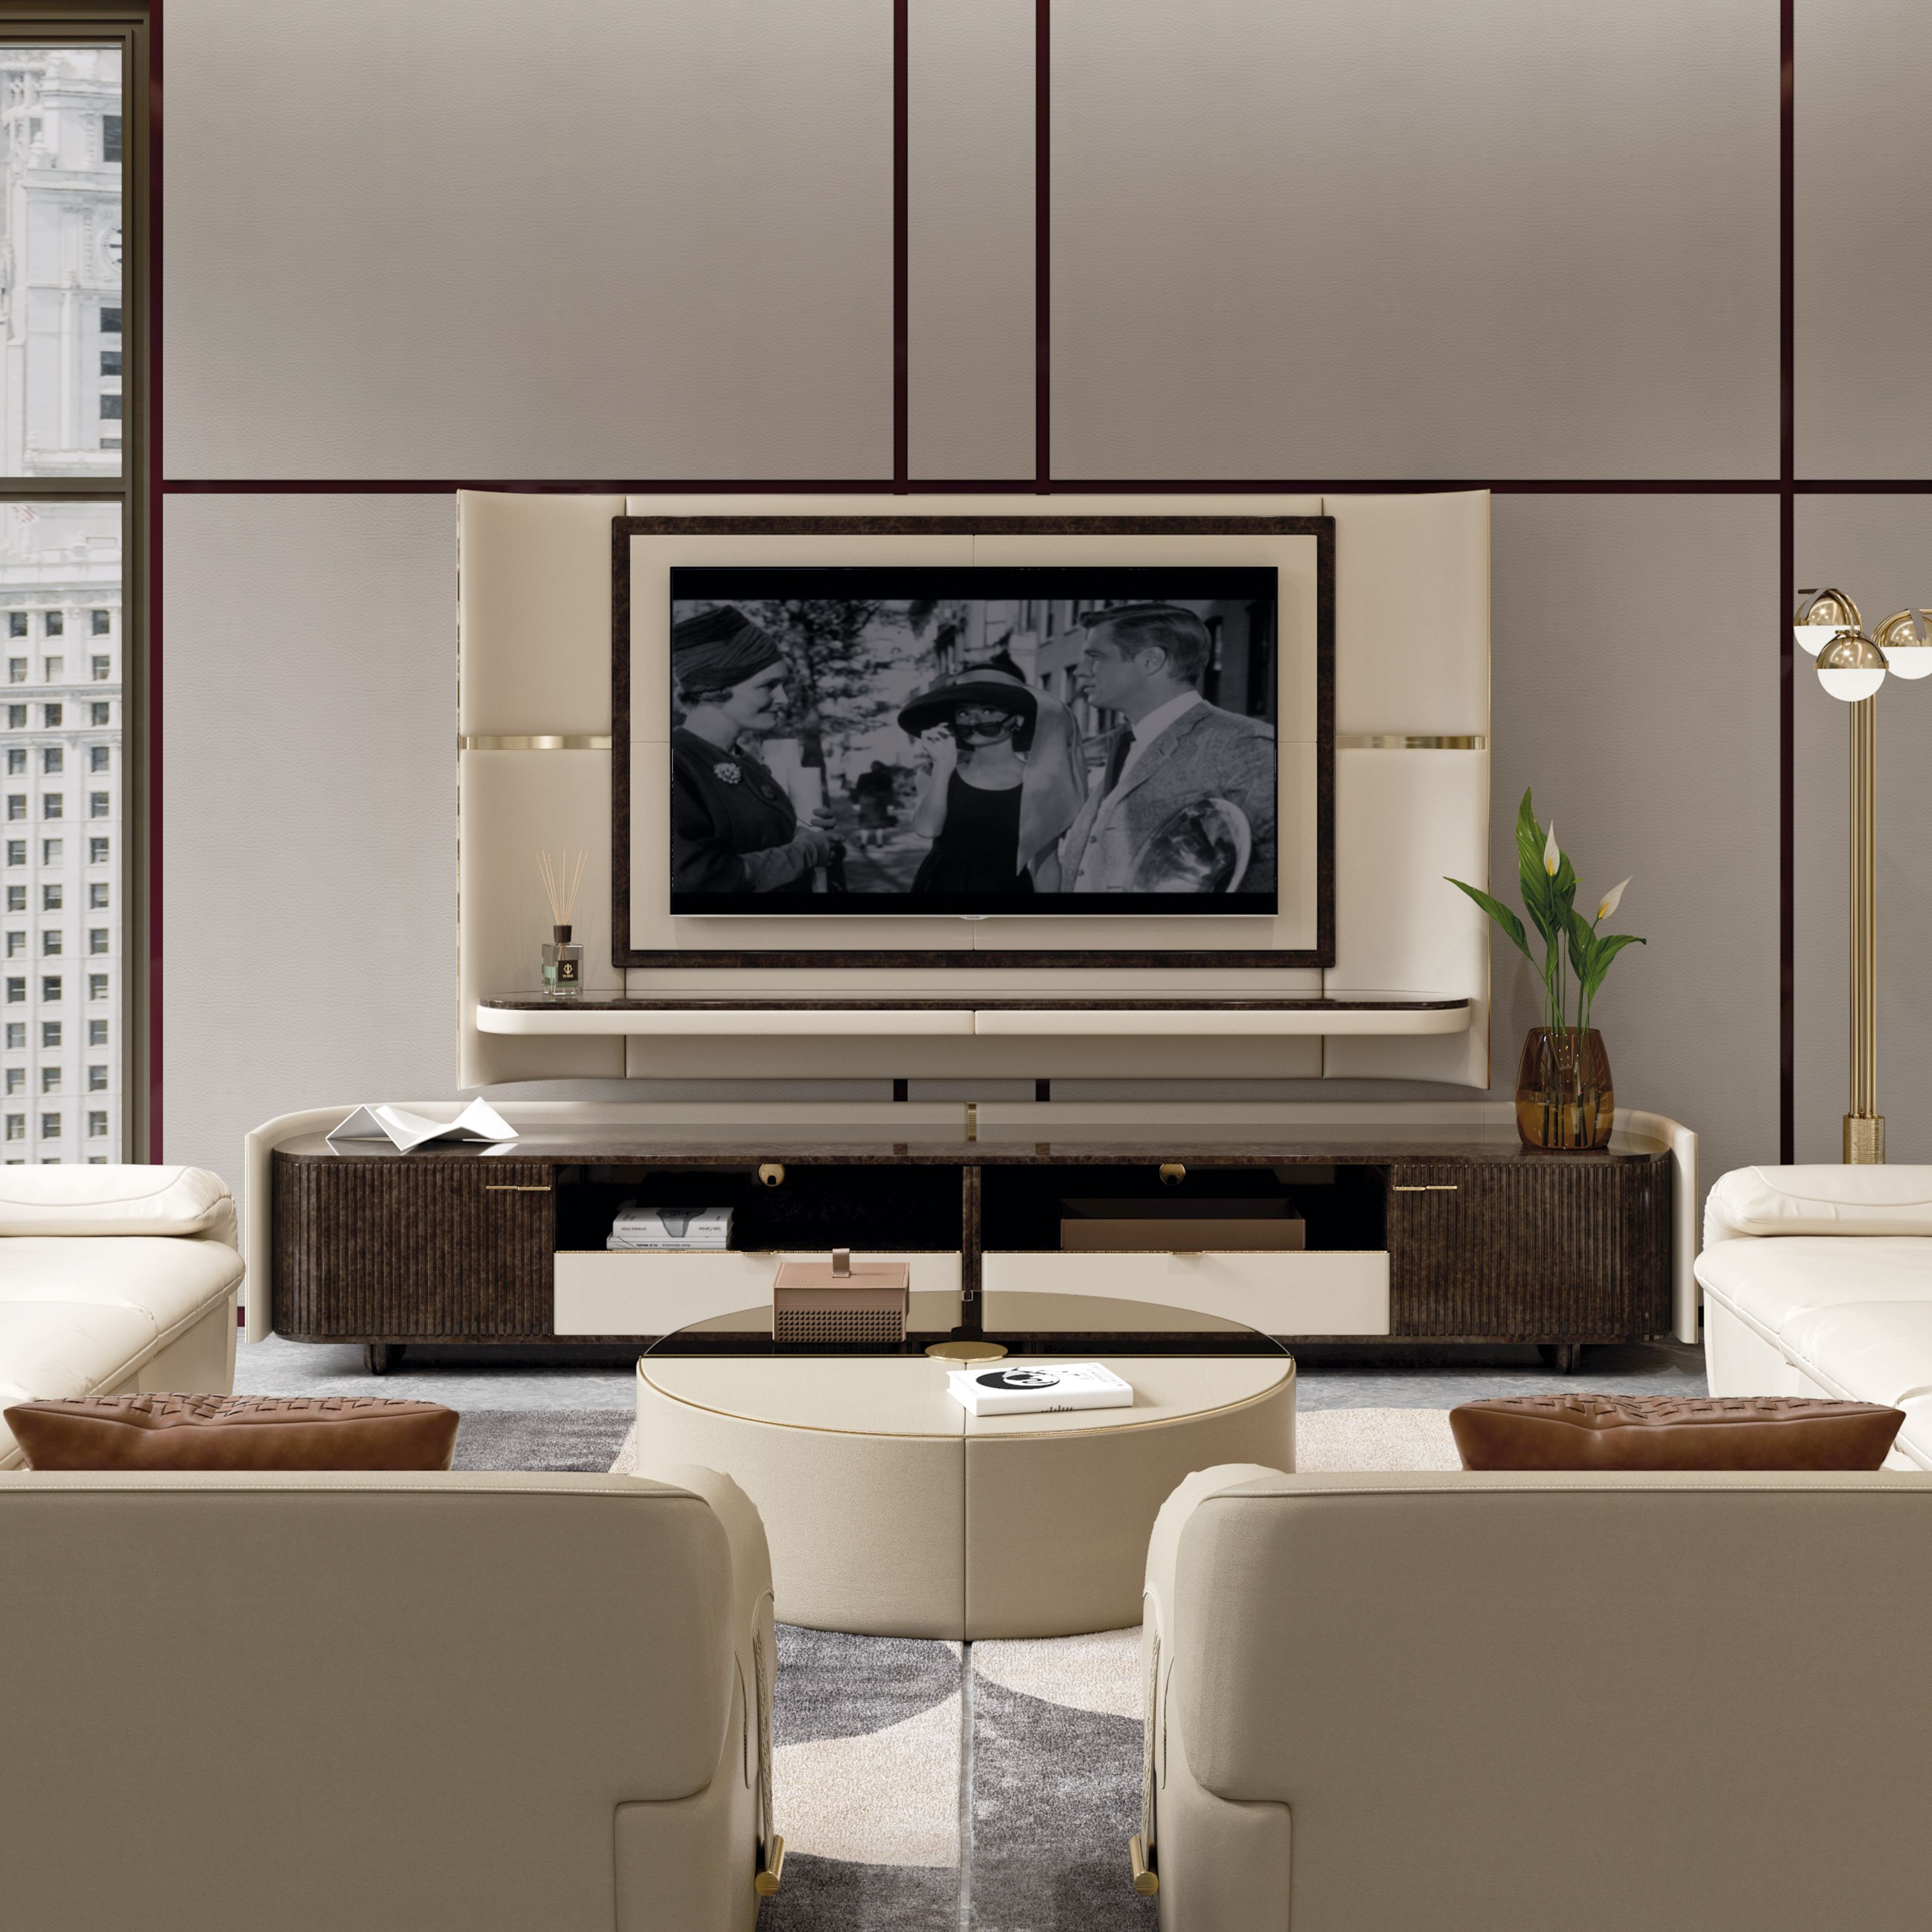 Italian Furniture For Exclusive And Modern Design Luxury Furniture Living Room Living Room Tv Unit Designs Luxury Living Room